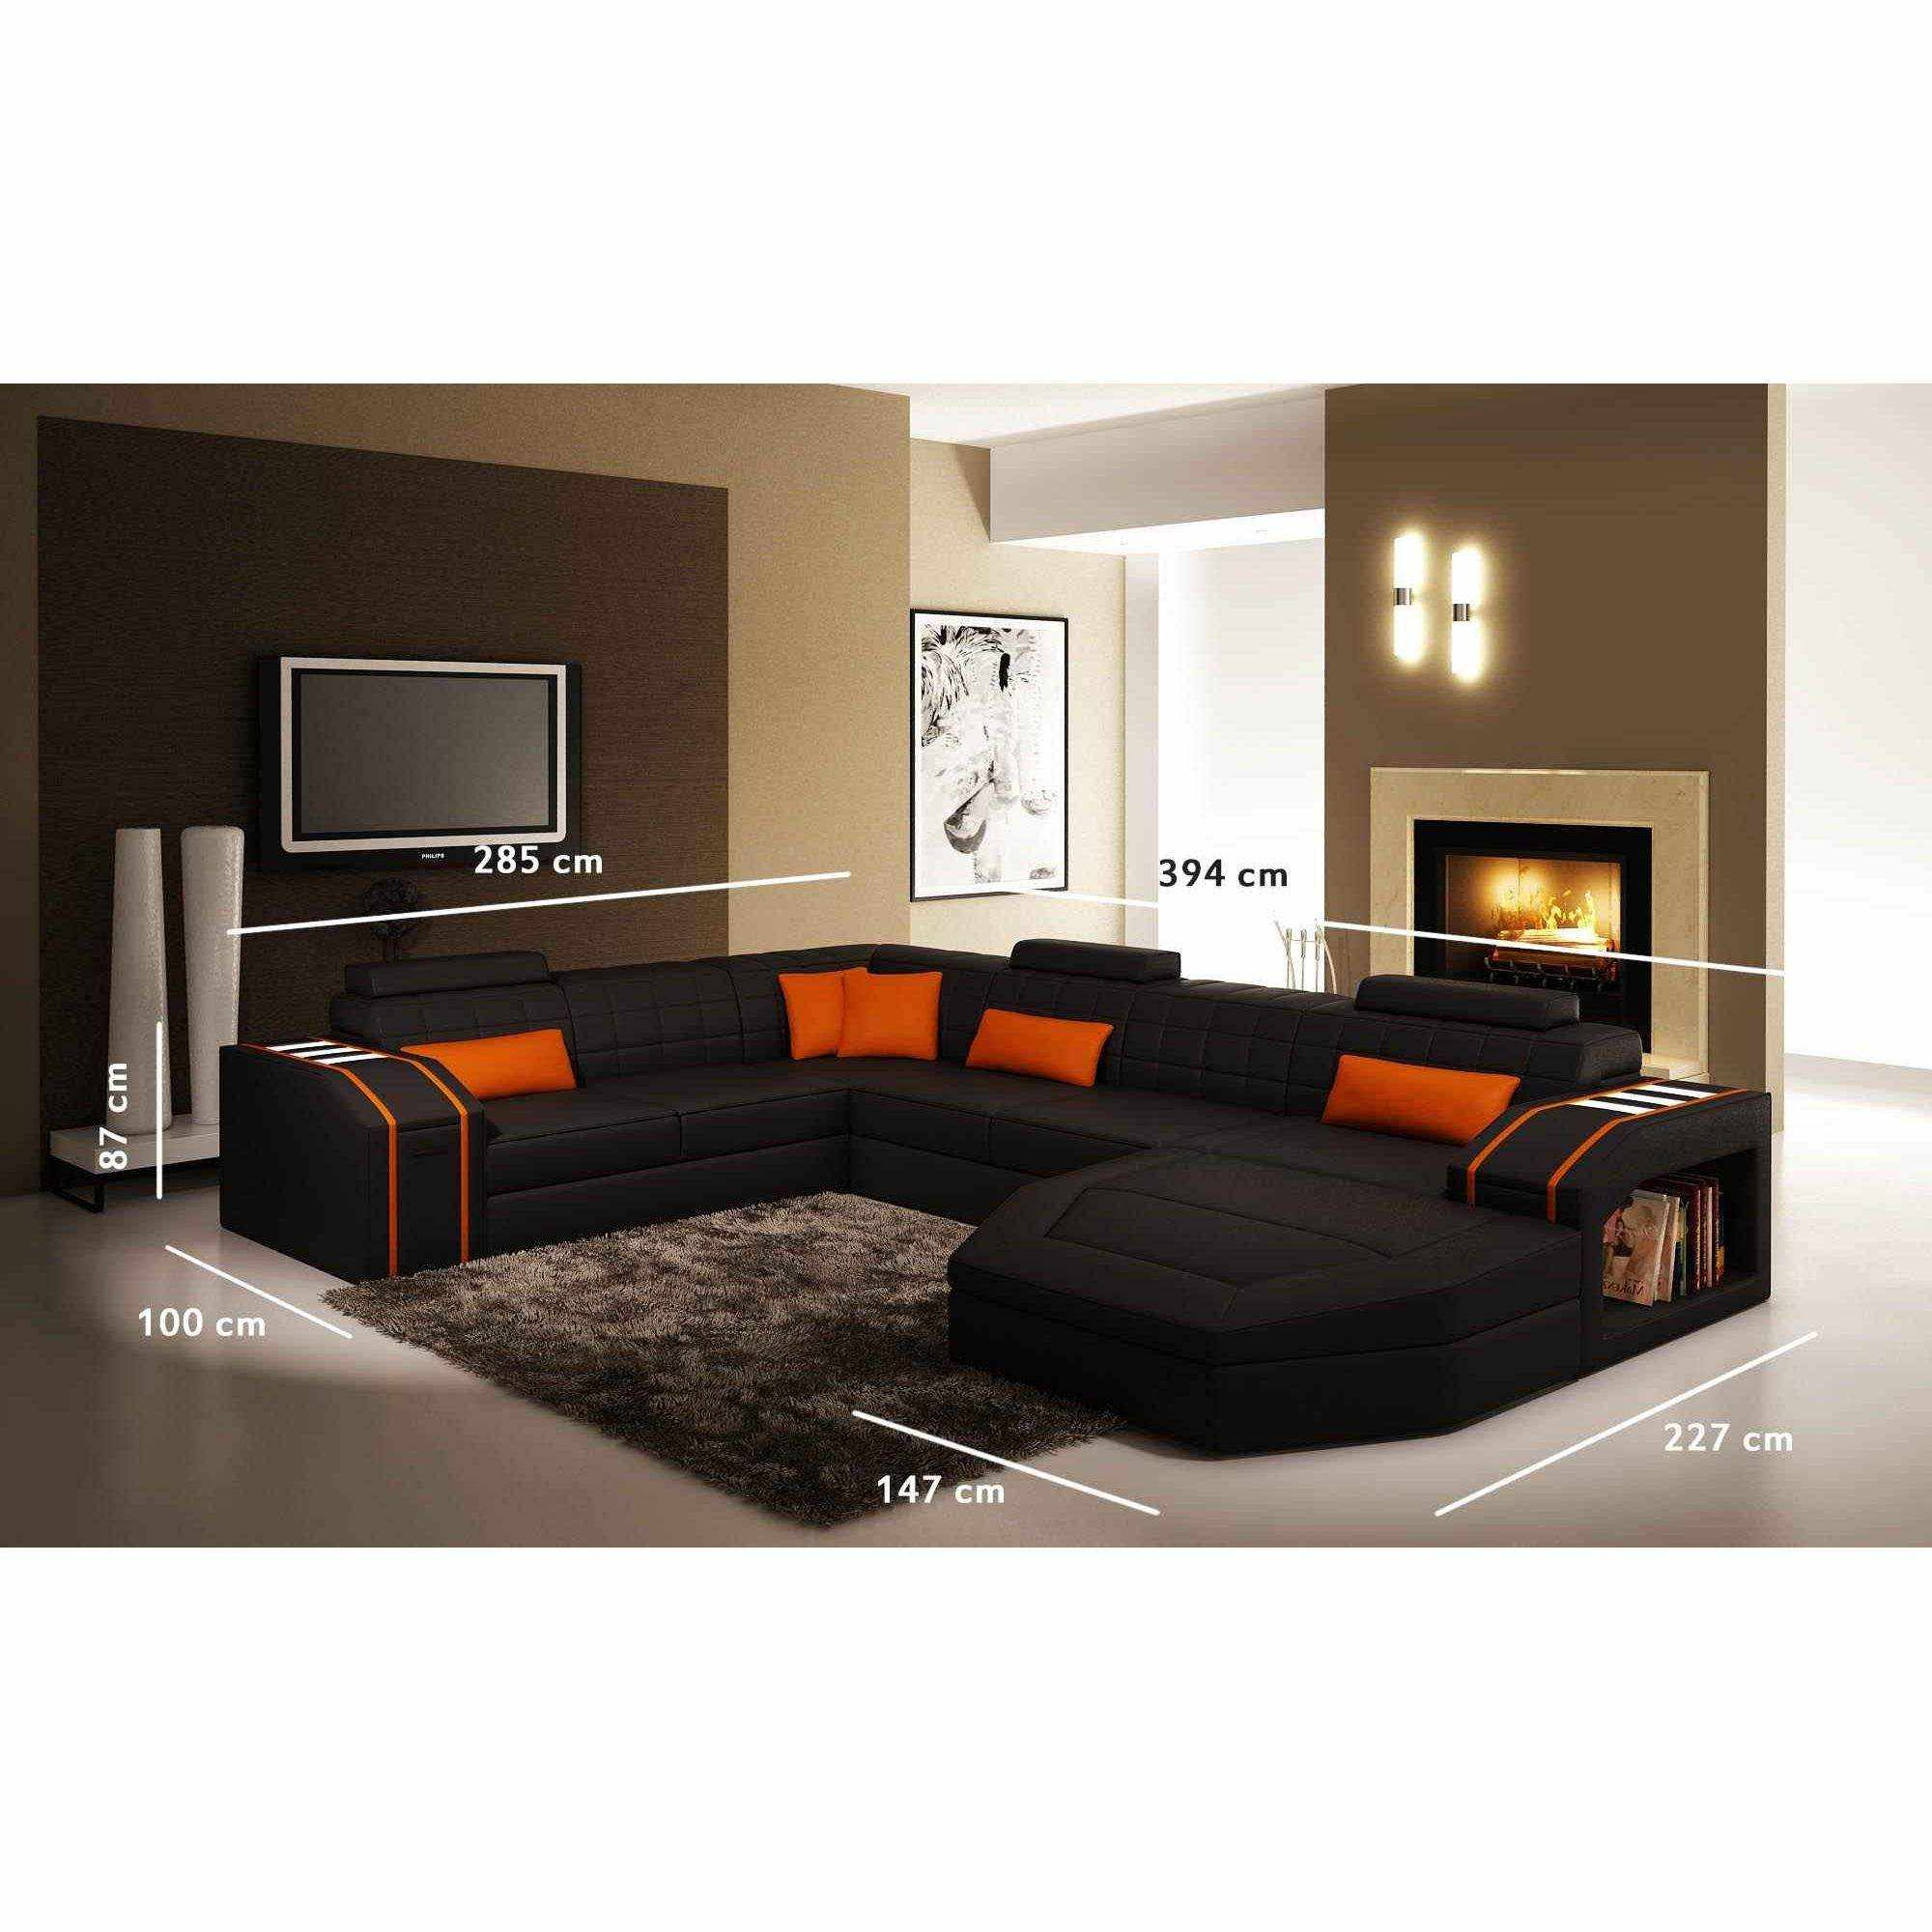 Deco in paris canape d angle panoramique cuir noir et - Canape d angle orange ...